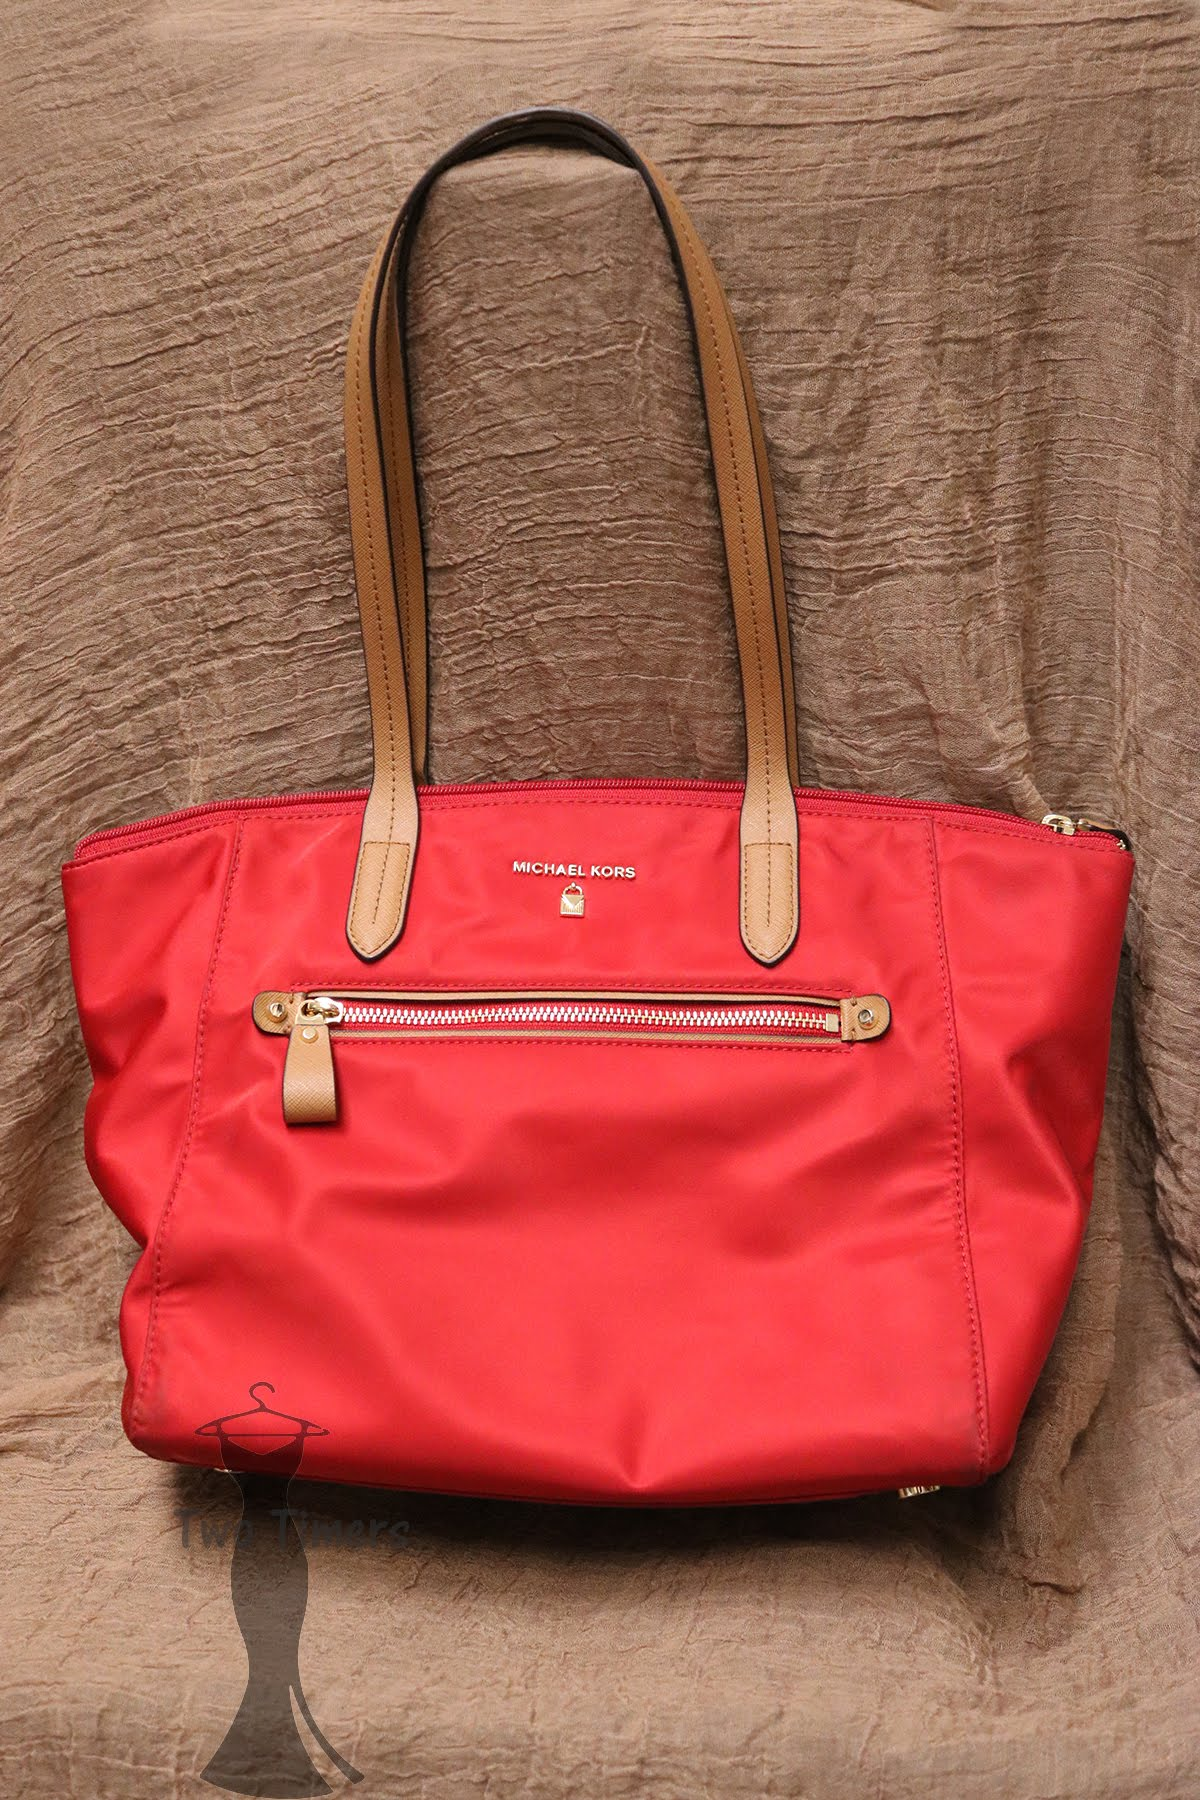 1e2110d9a066 ... reduced red michael kors purse nwt cd775 0c262